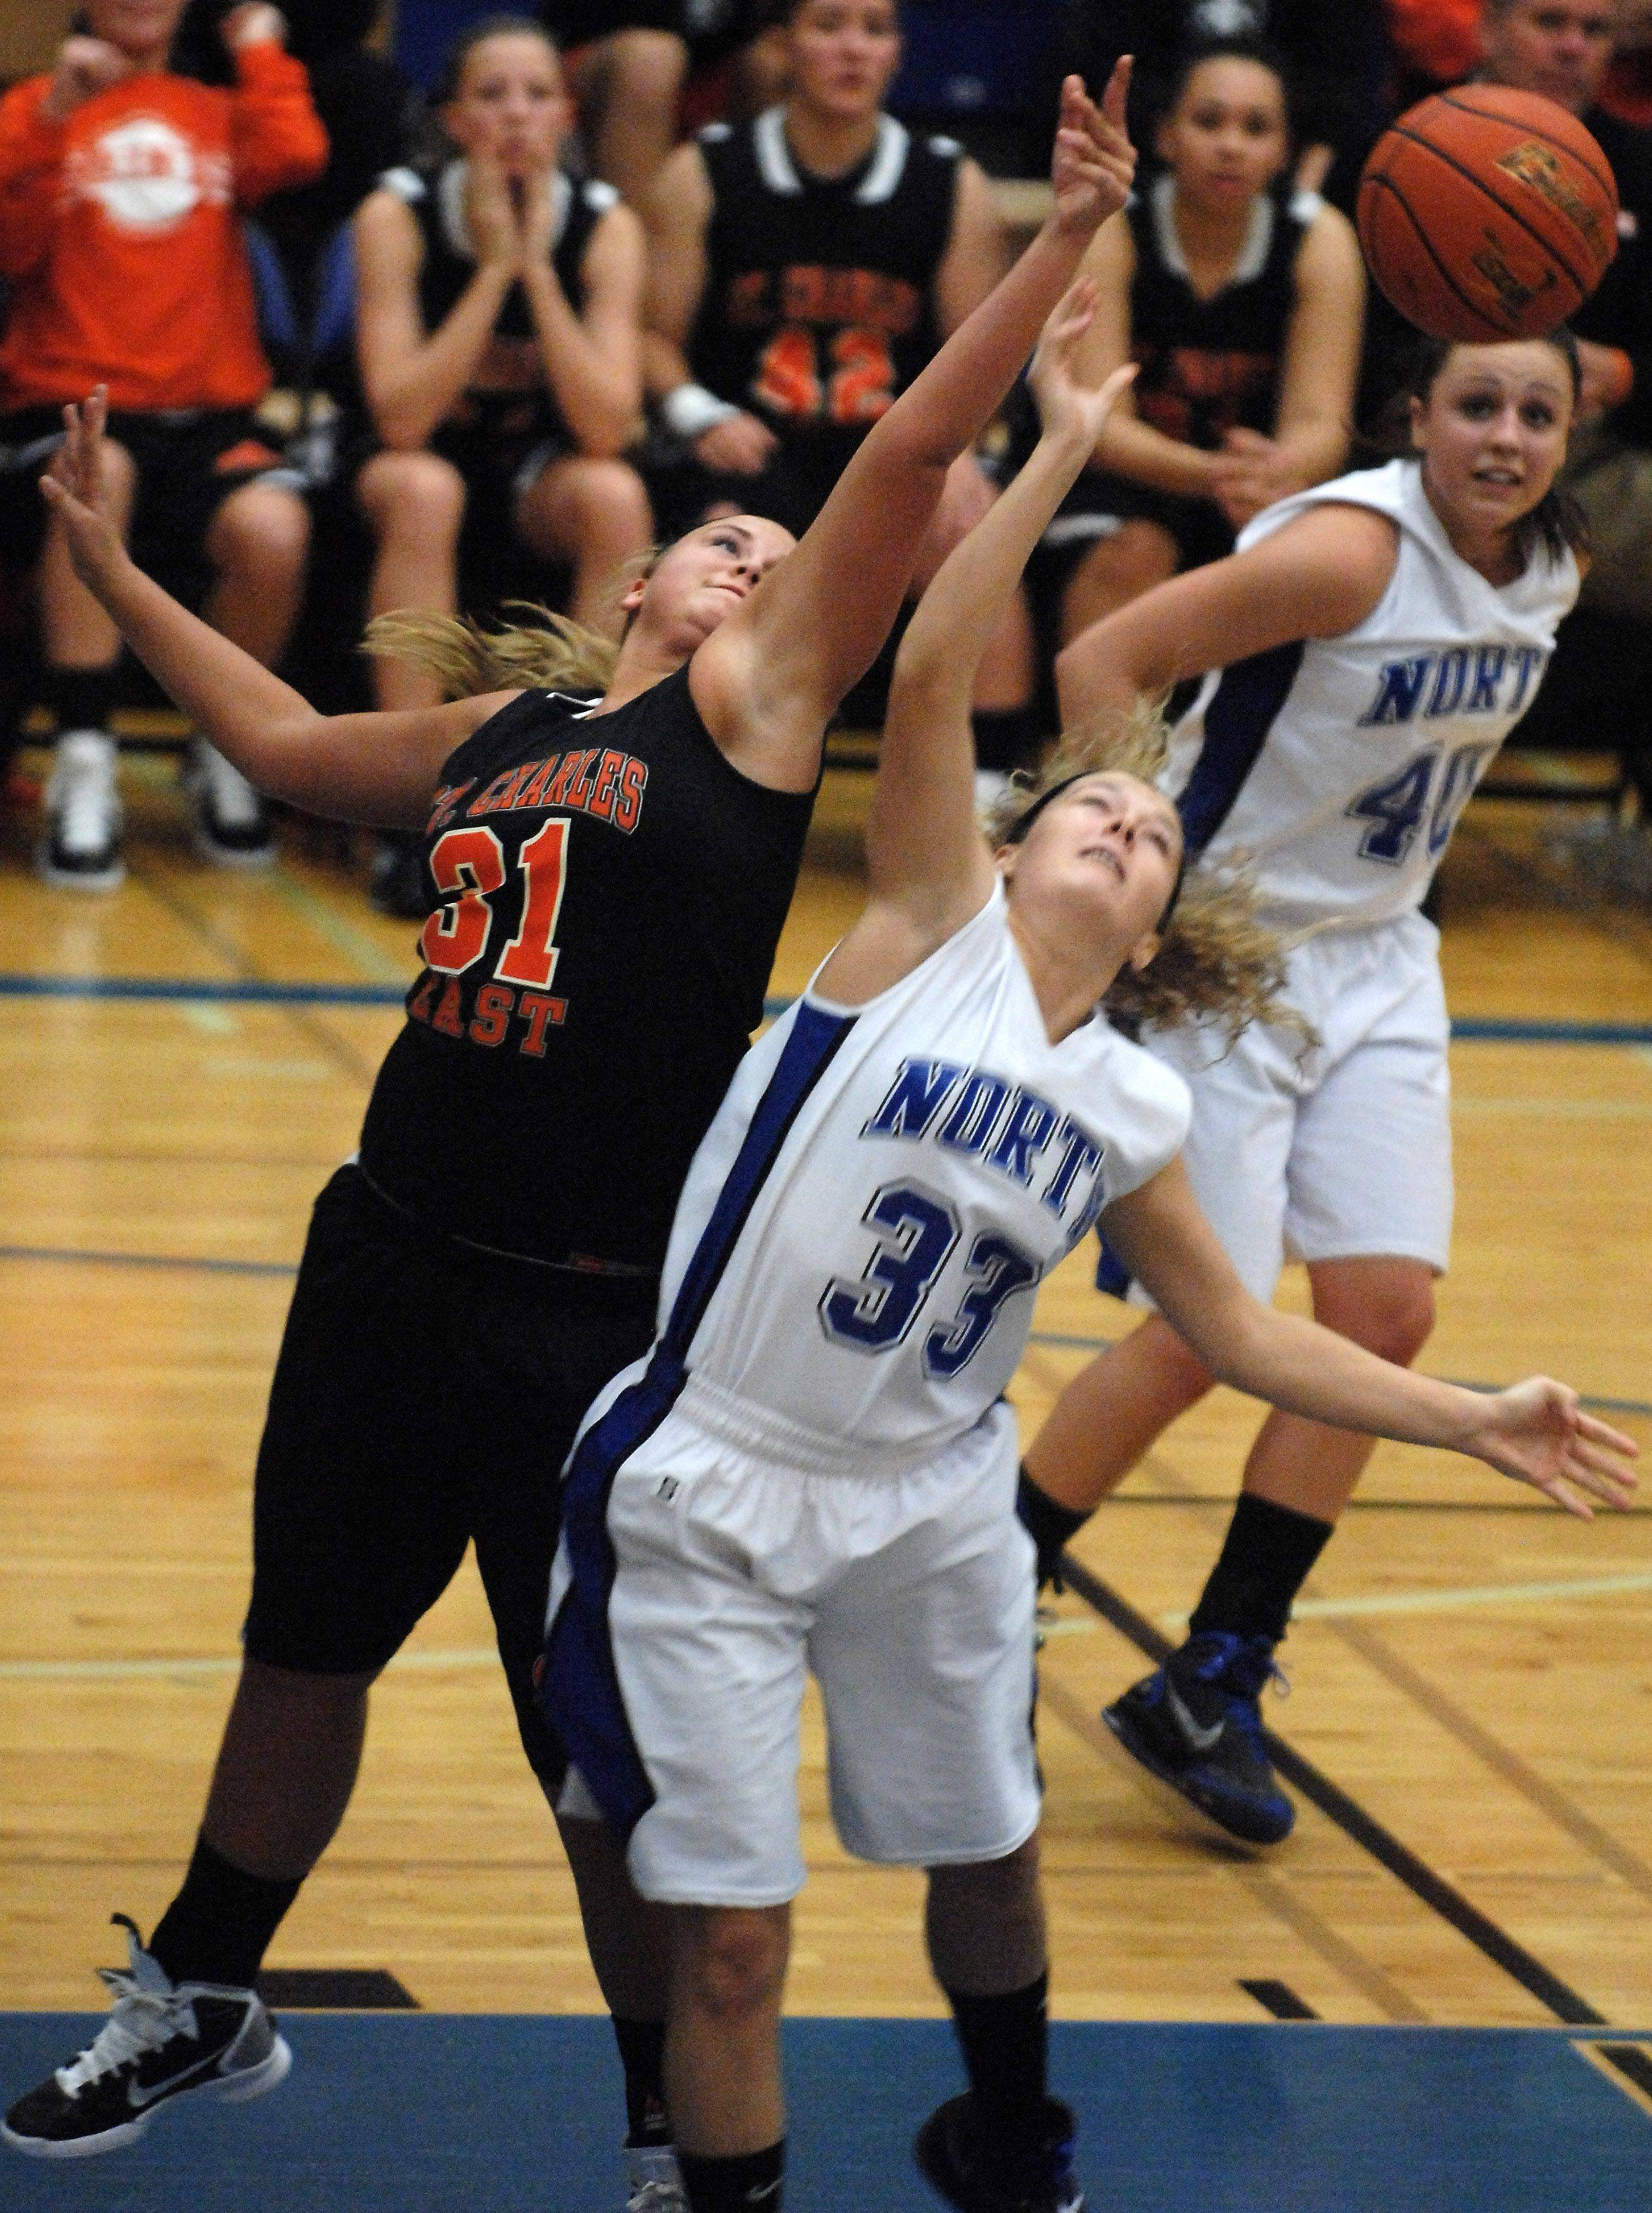 St. Charles East forward Morgan Vyzral and St. Charles North guard Taylor Russell battle for a rebound.